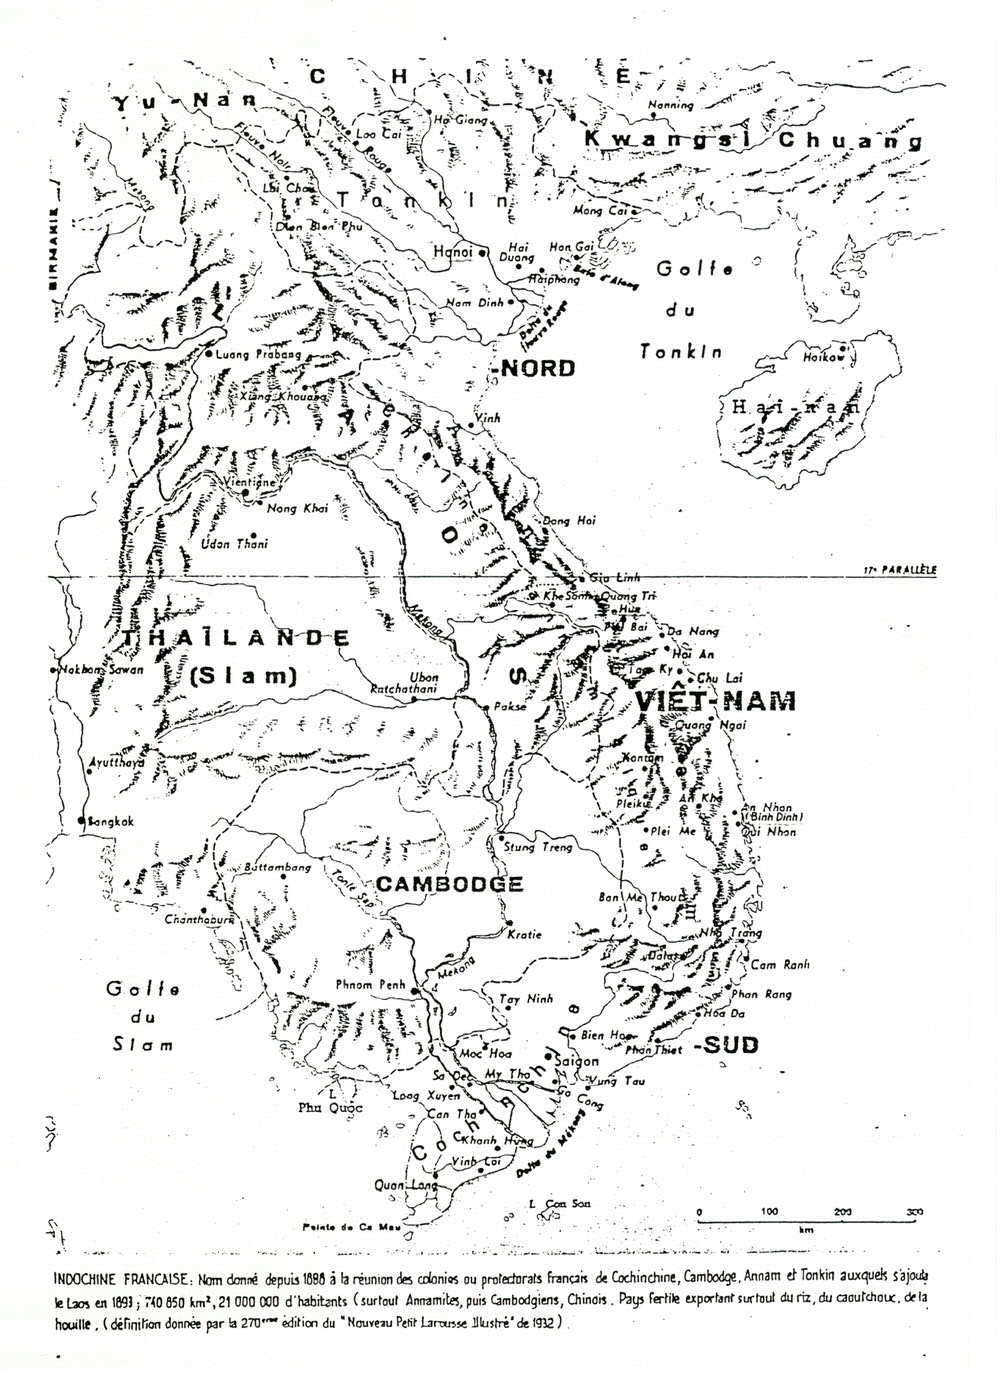 Carte du Viêt-Nam, version scannée